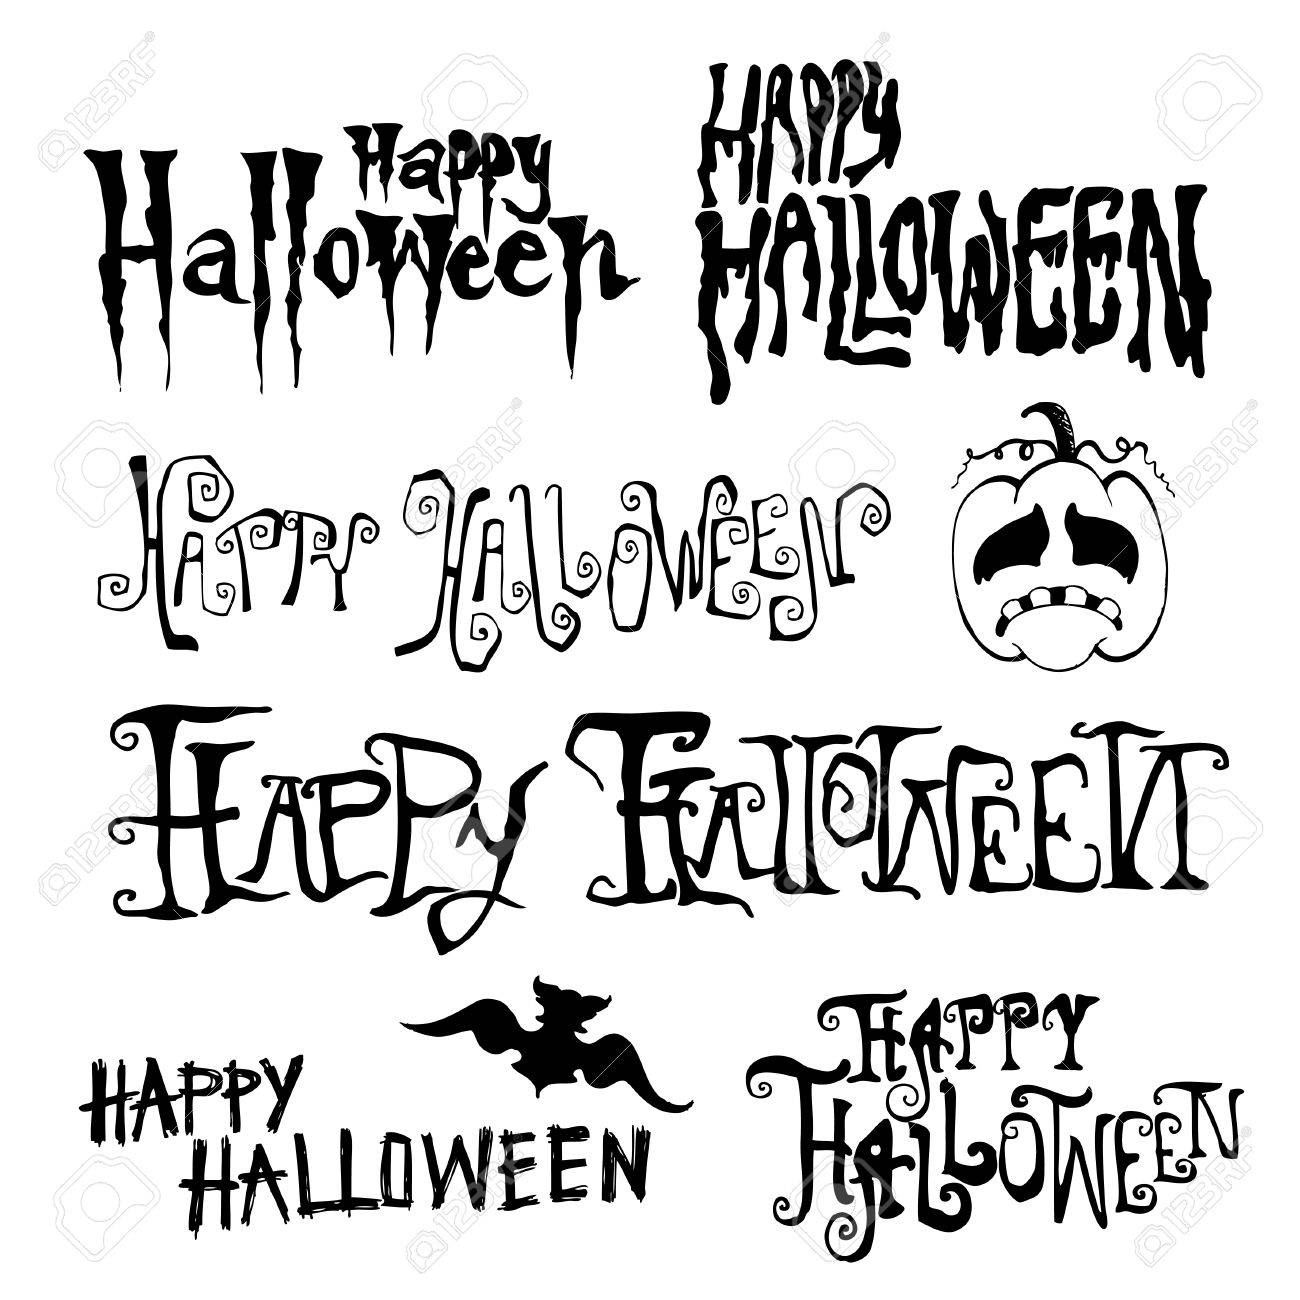 Happy halloween Day hand drawn typography, Doodles vector illustration - 59240664